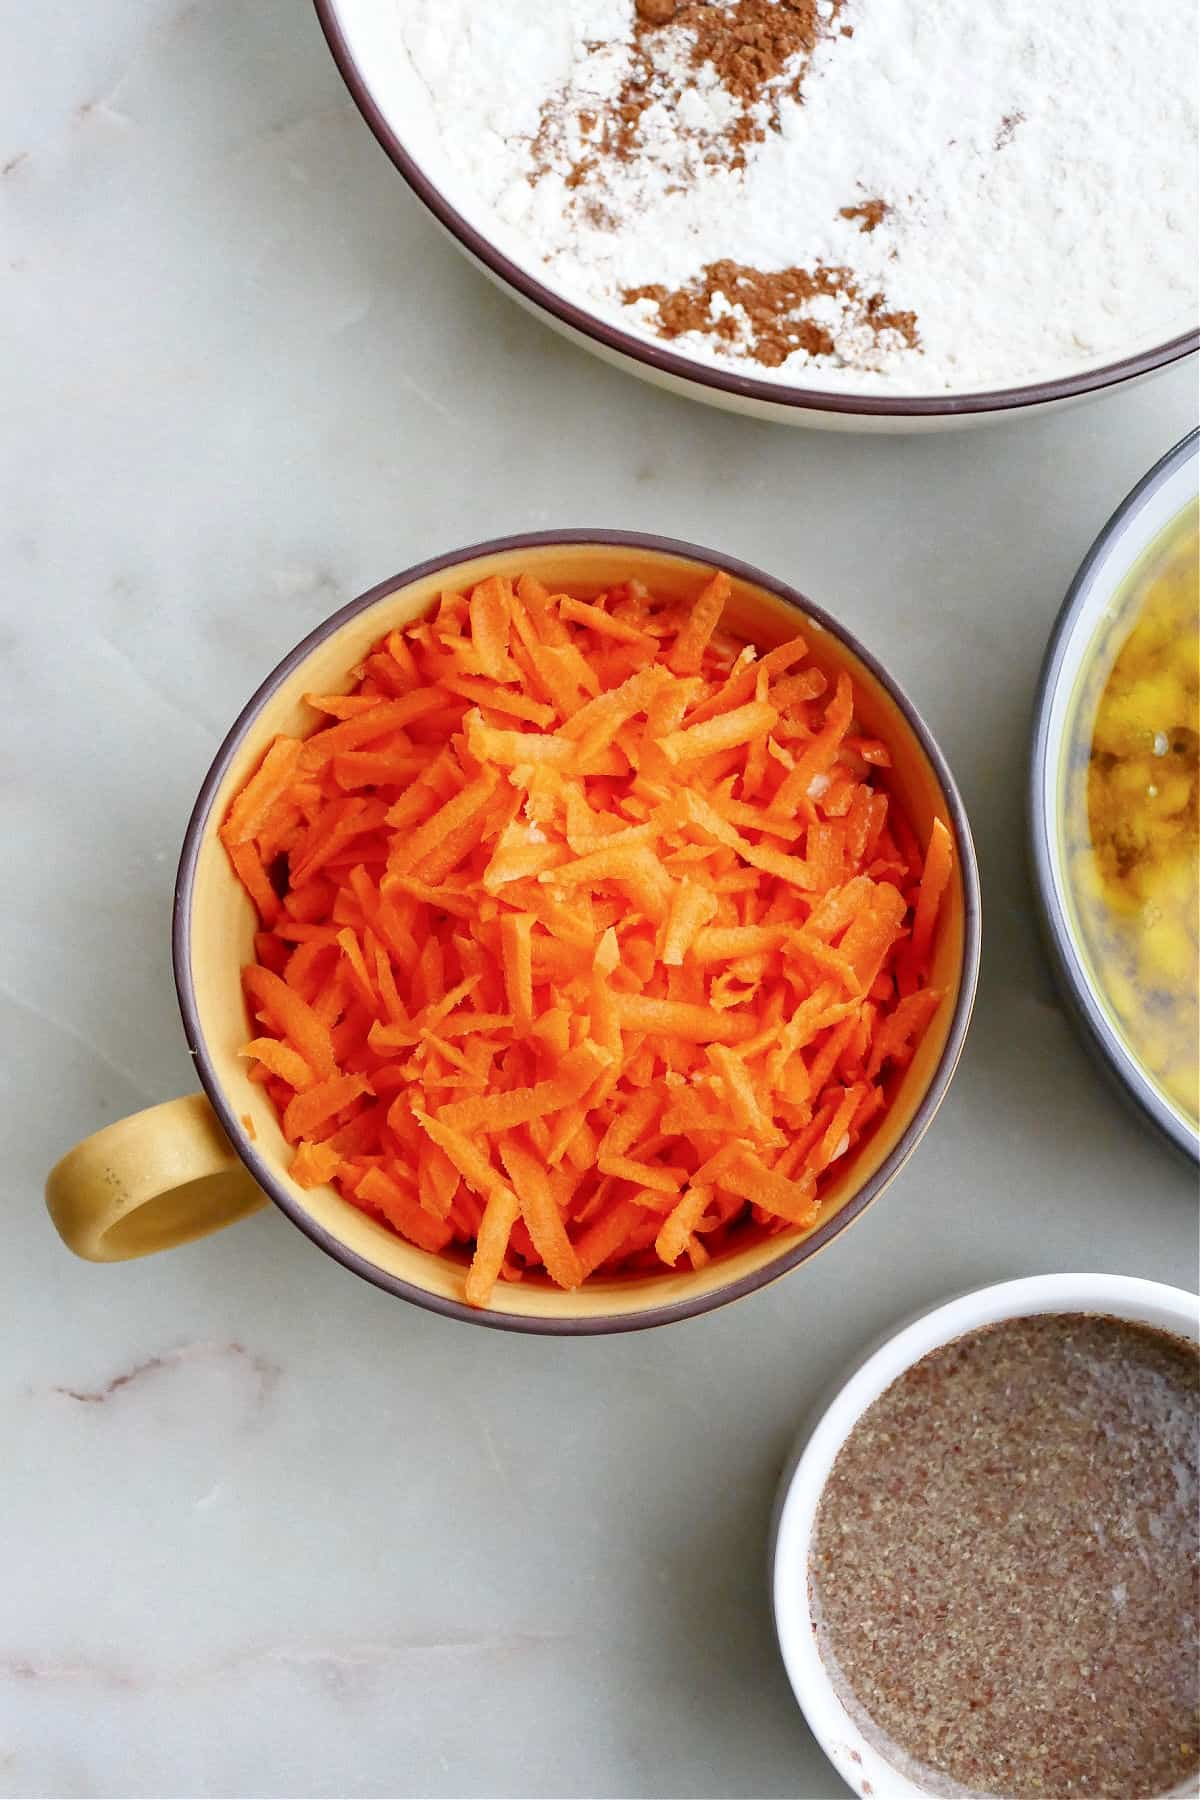 shredded carrots in a large mug next to other ingredients on a counter